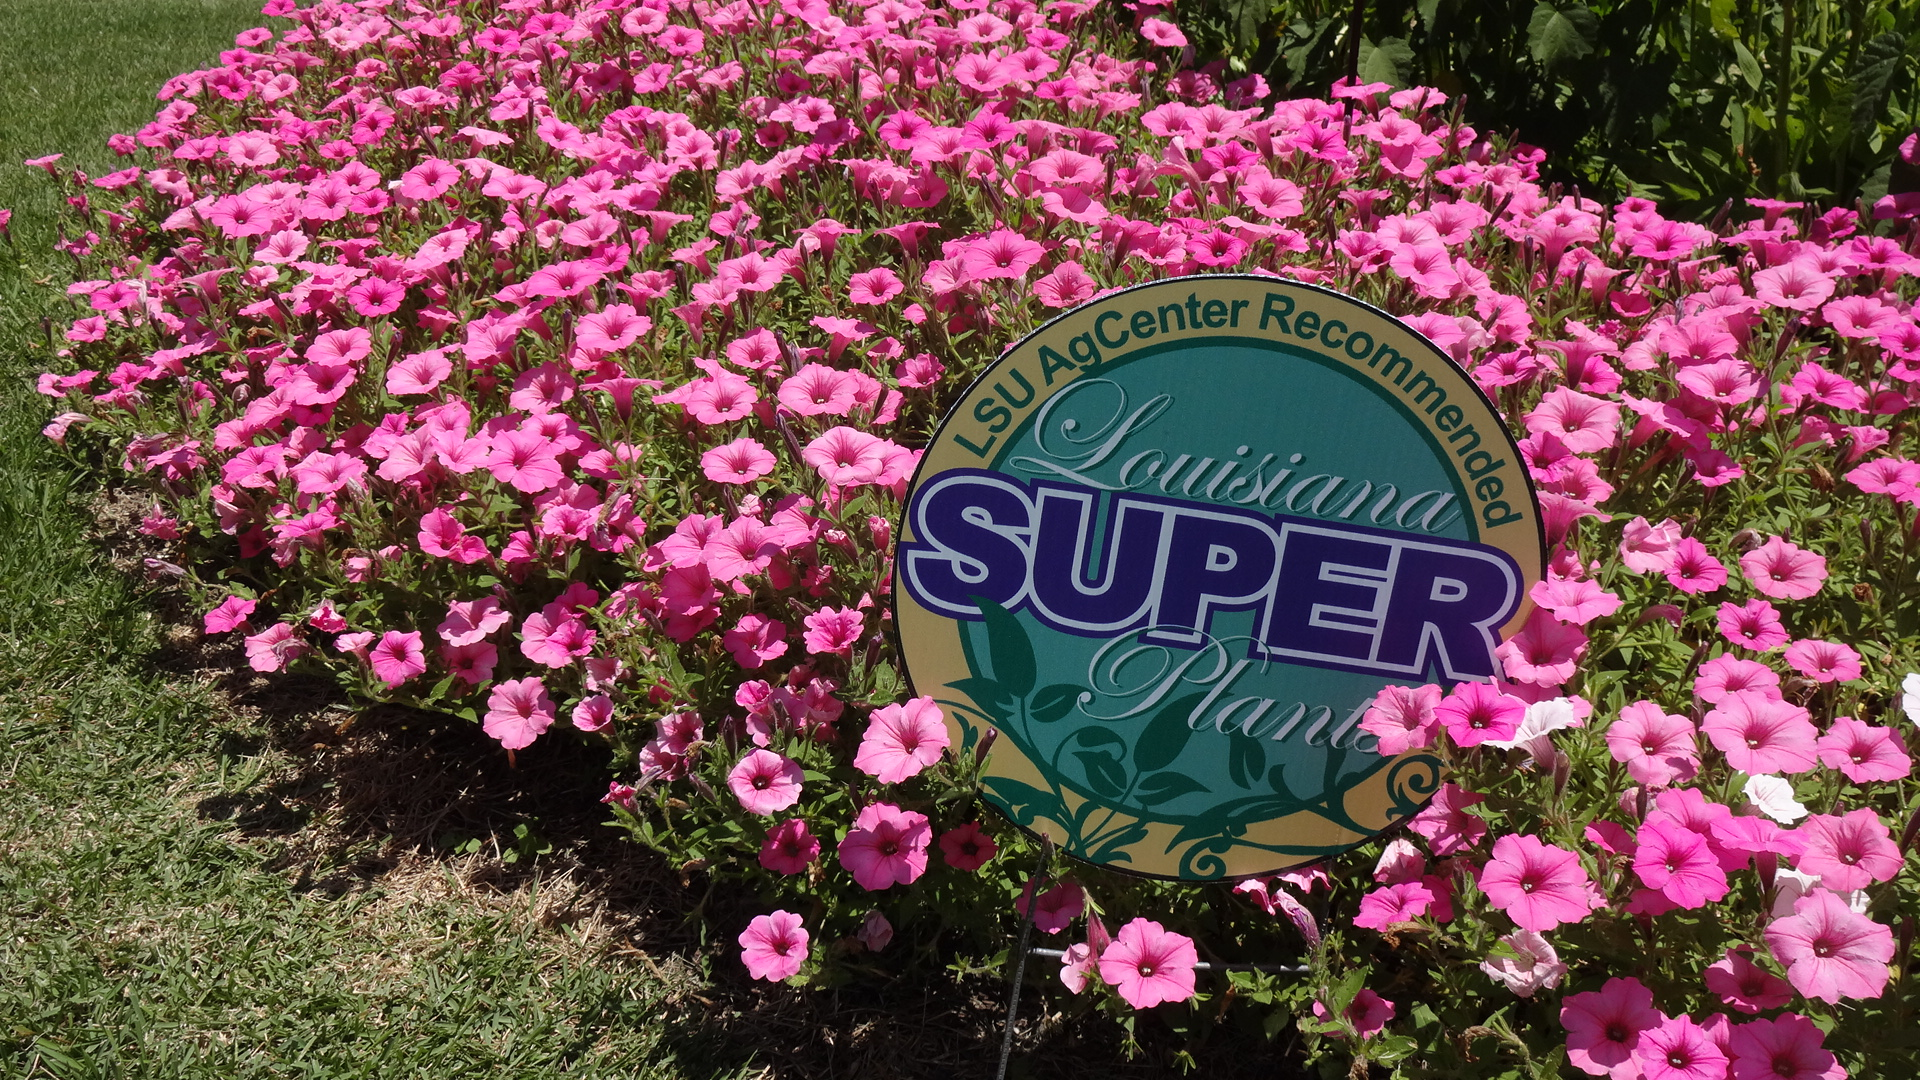 Supertunia Vista Bubblegum PetuniaJPG Allen OwingsJPG